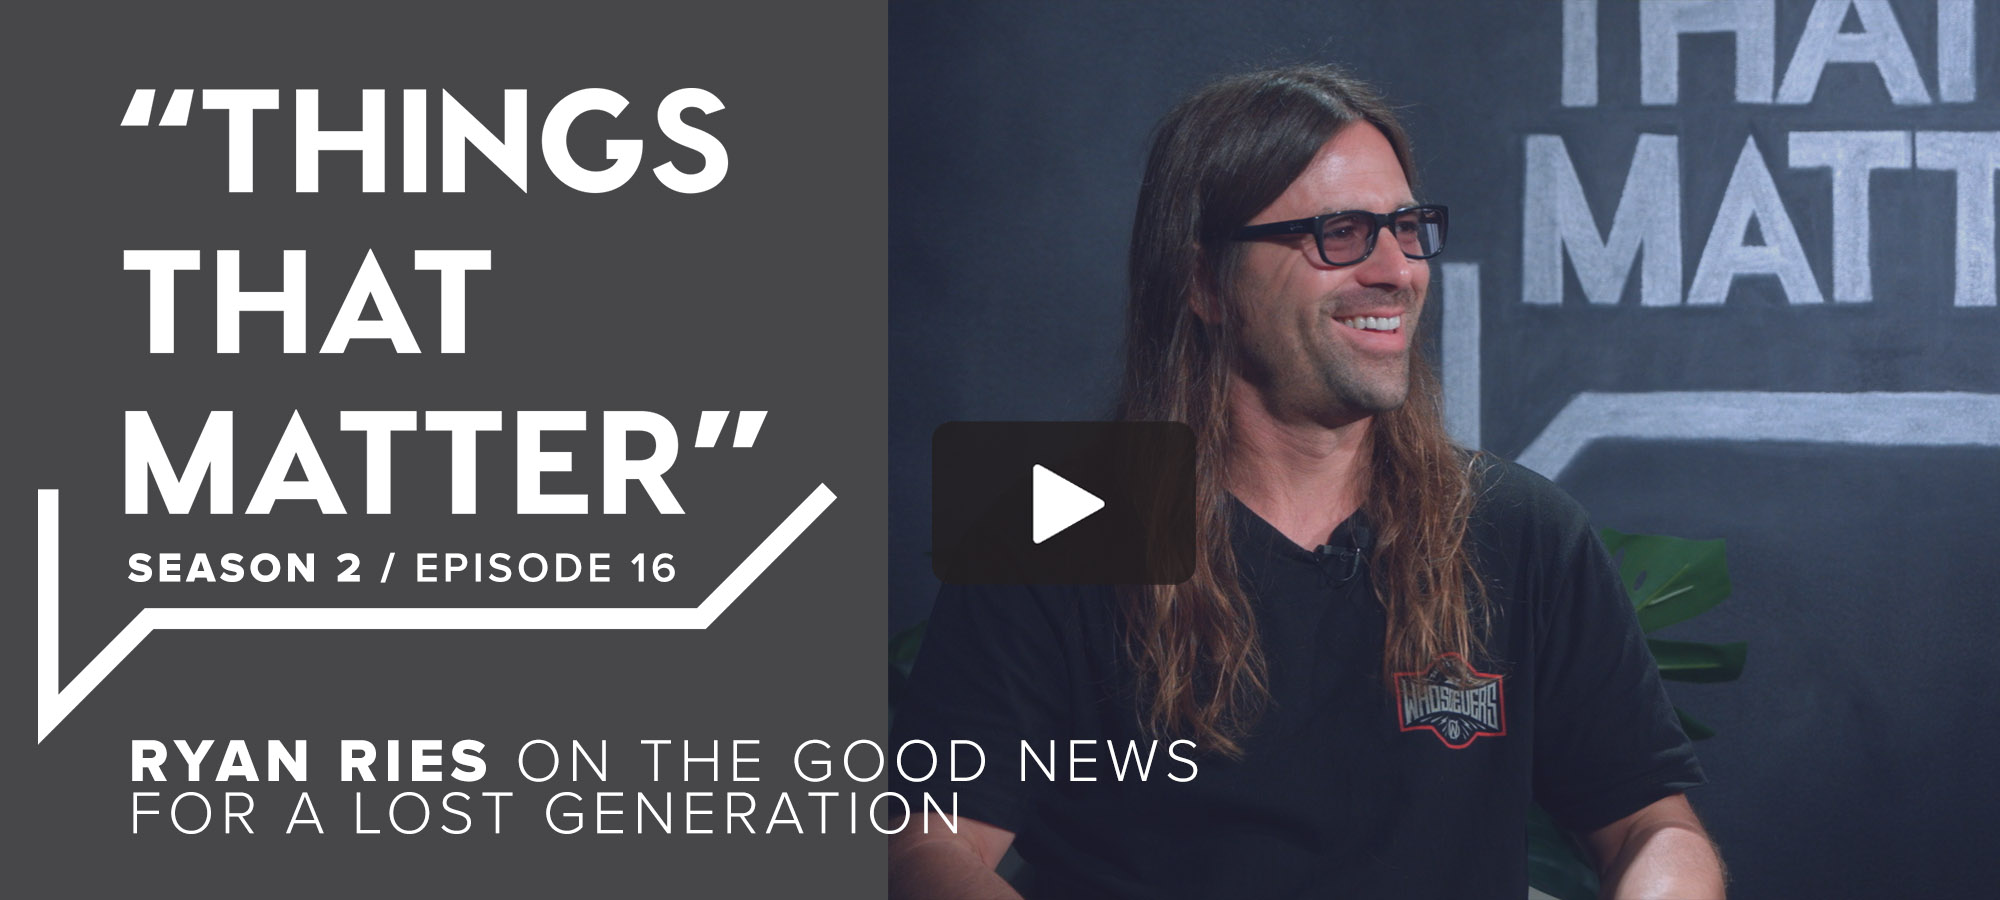 TTM S2 E19 - Ryan Ries on the Good News for a Lost Generation